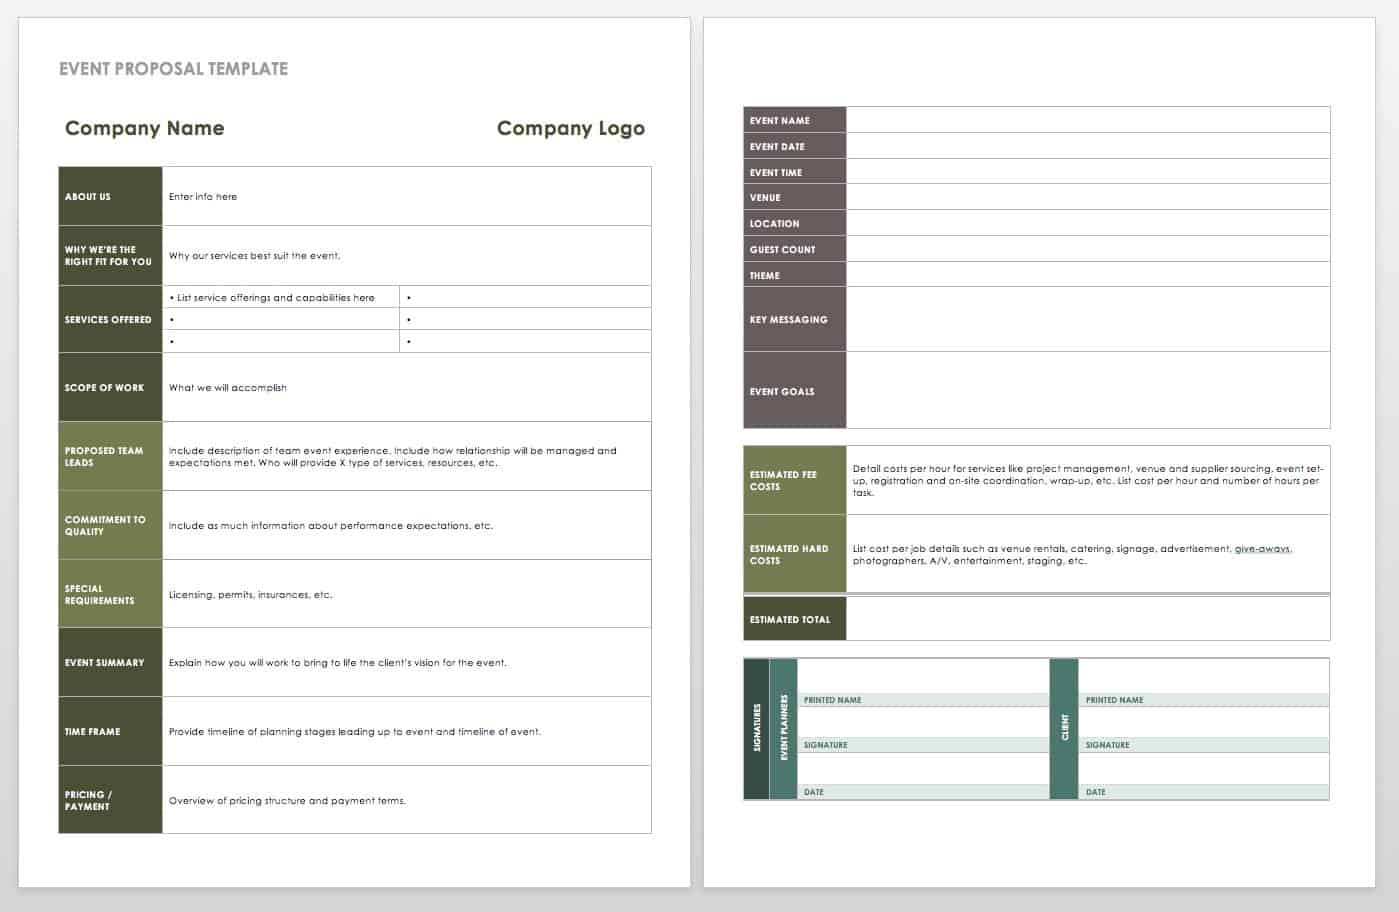 21 Free Event Planning Templates | Smartsheet for Corporate Event Planning Checklist Template